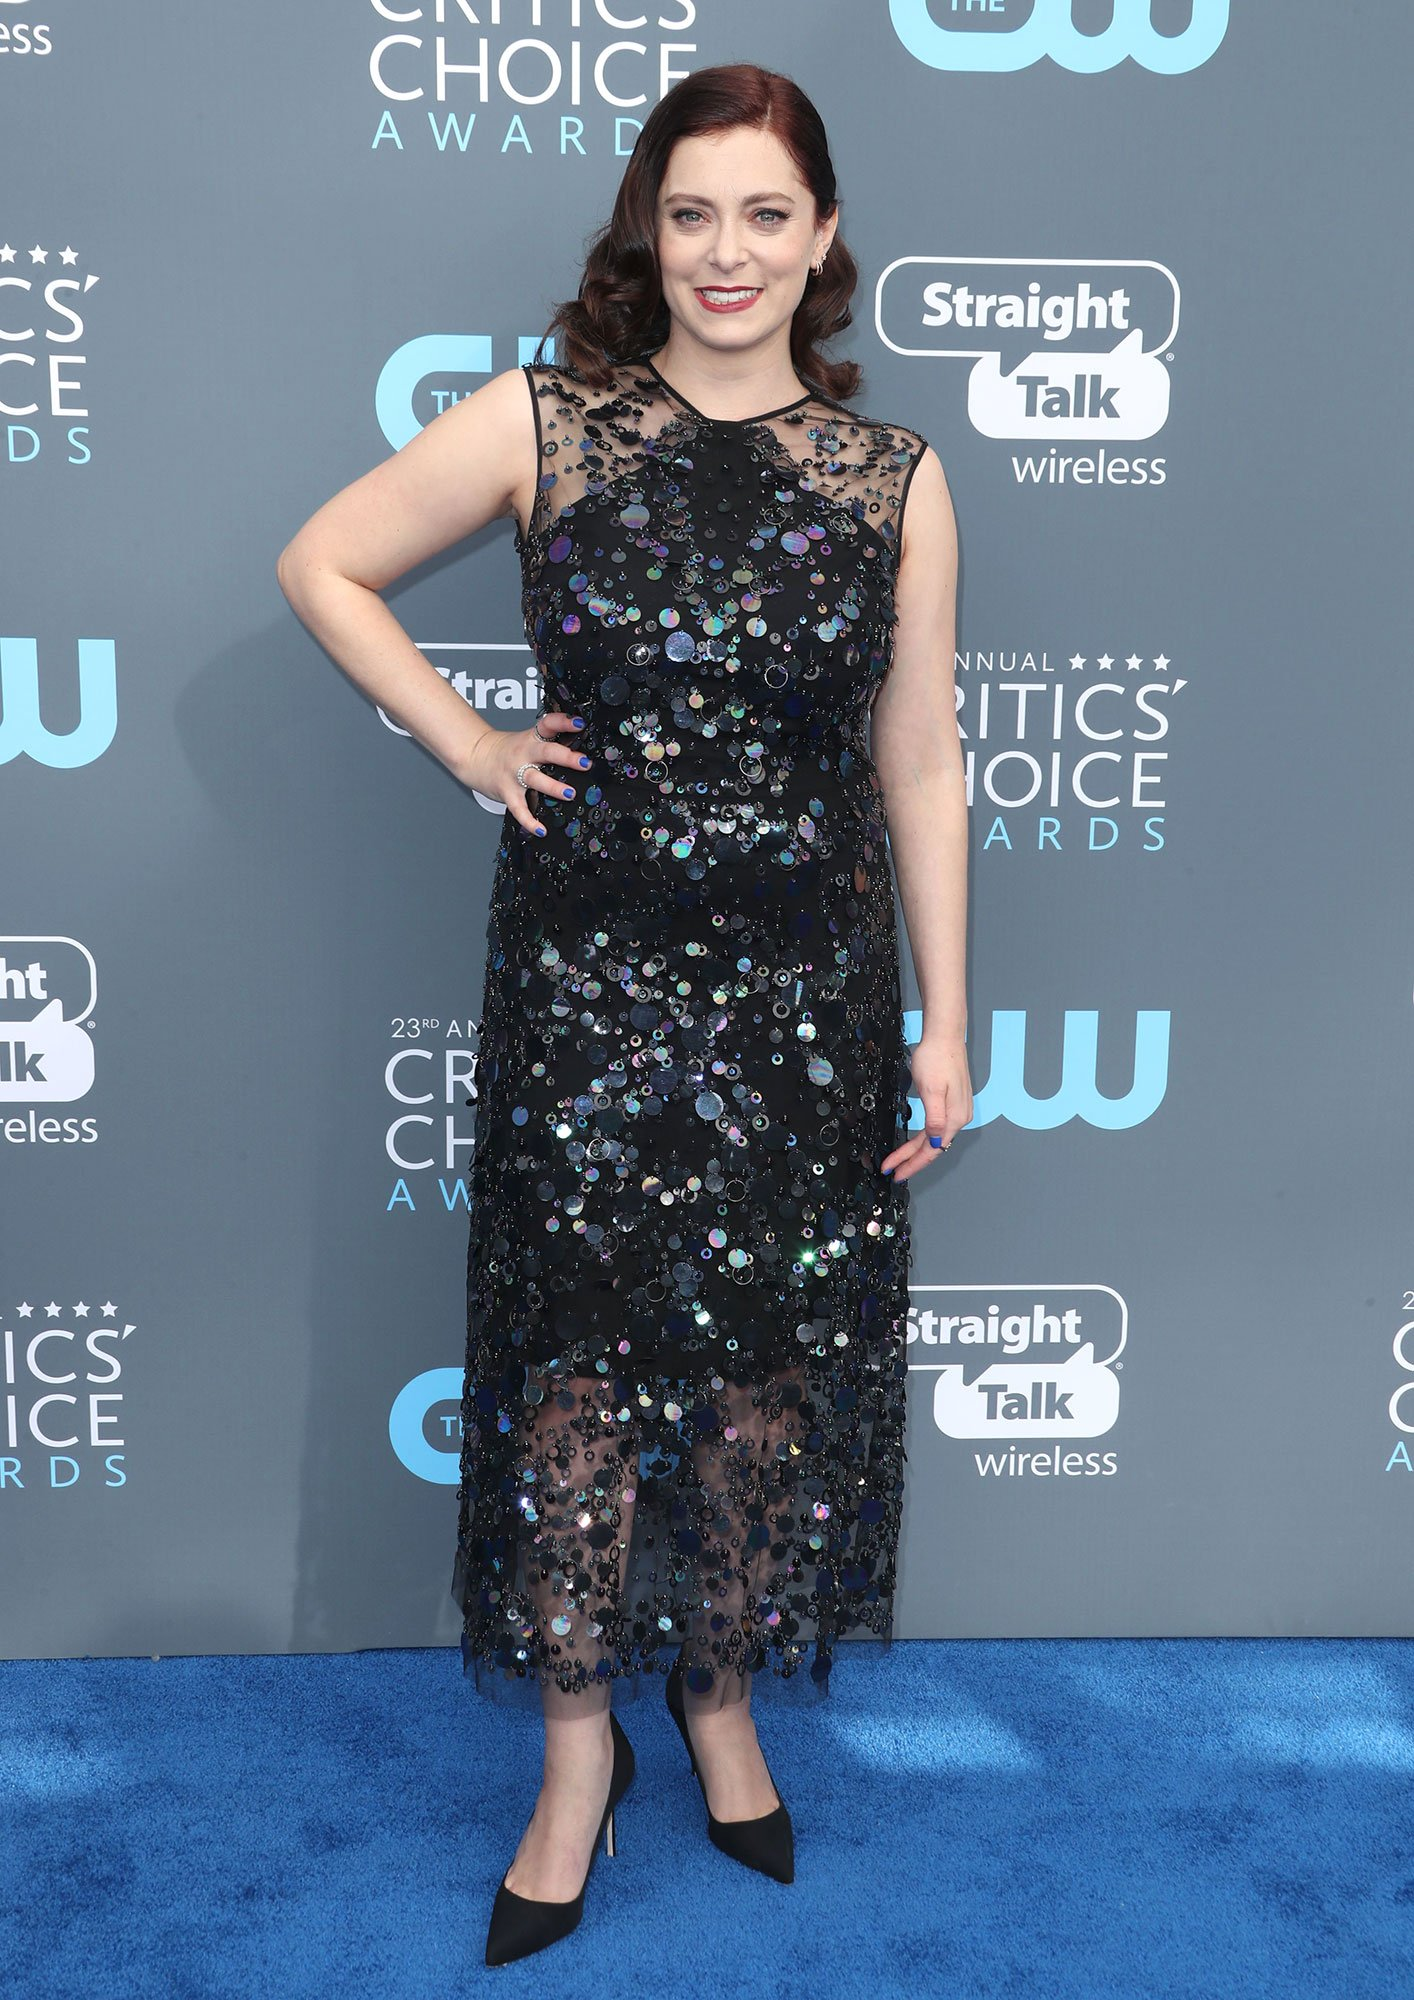 Critics' Choice Awards: Rachel Bloom dings former host T.J. Miller